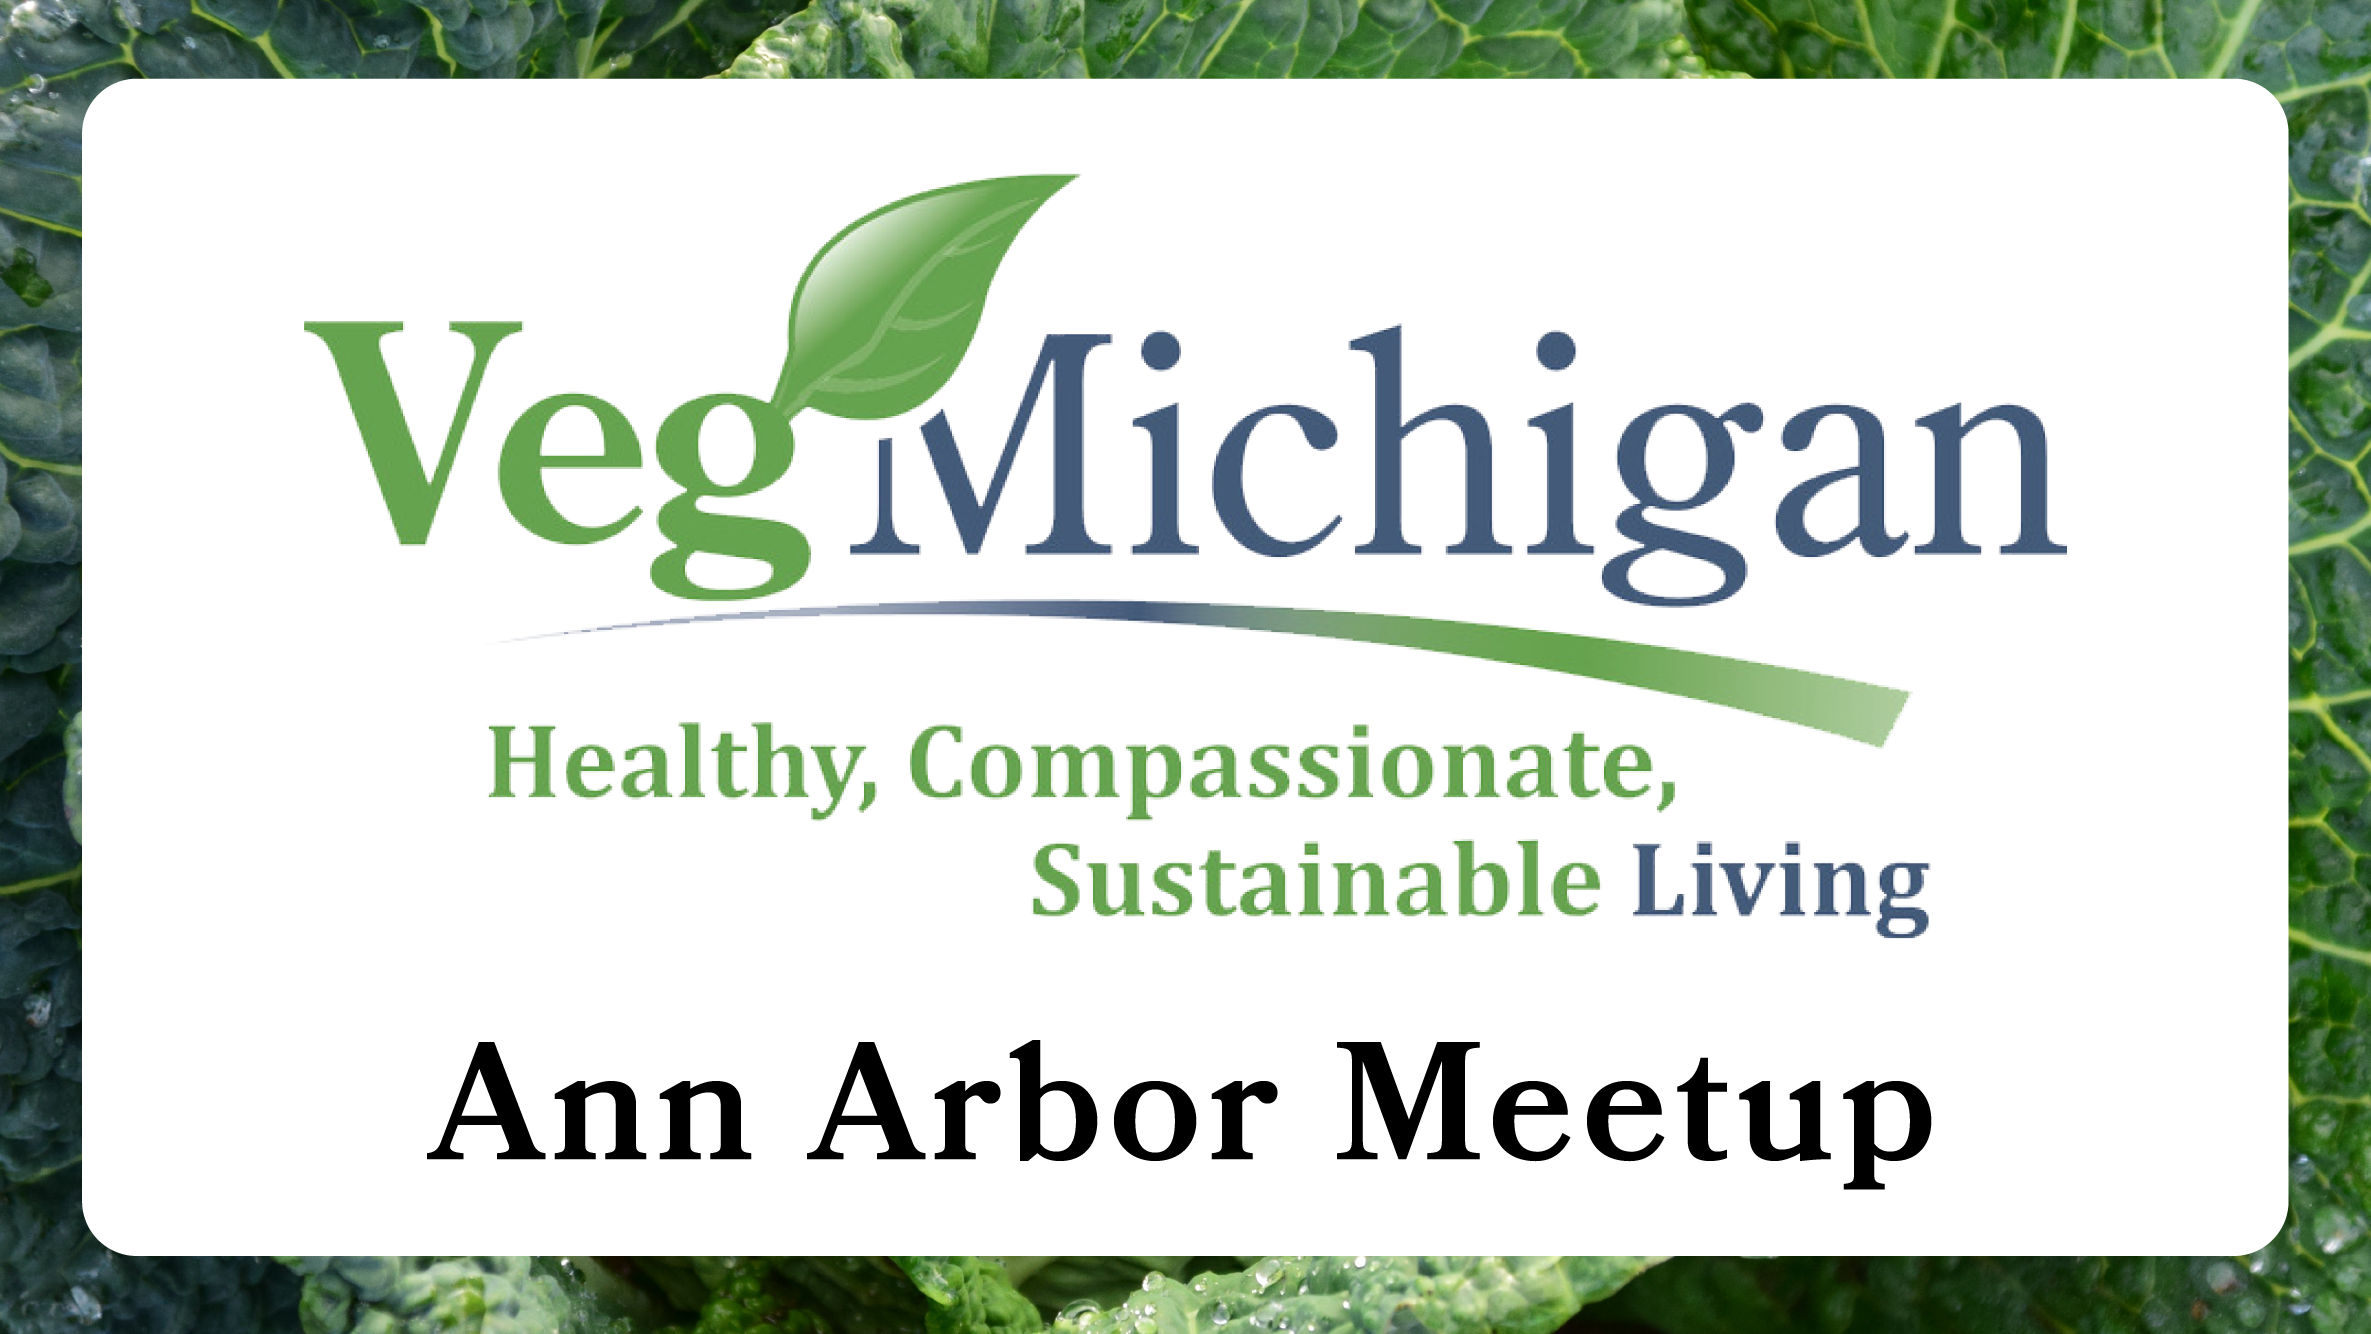 VegMichigan Ann Arbor Area